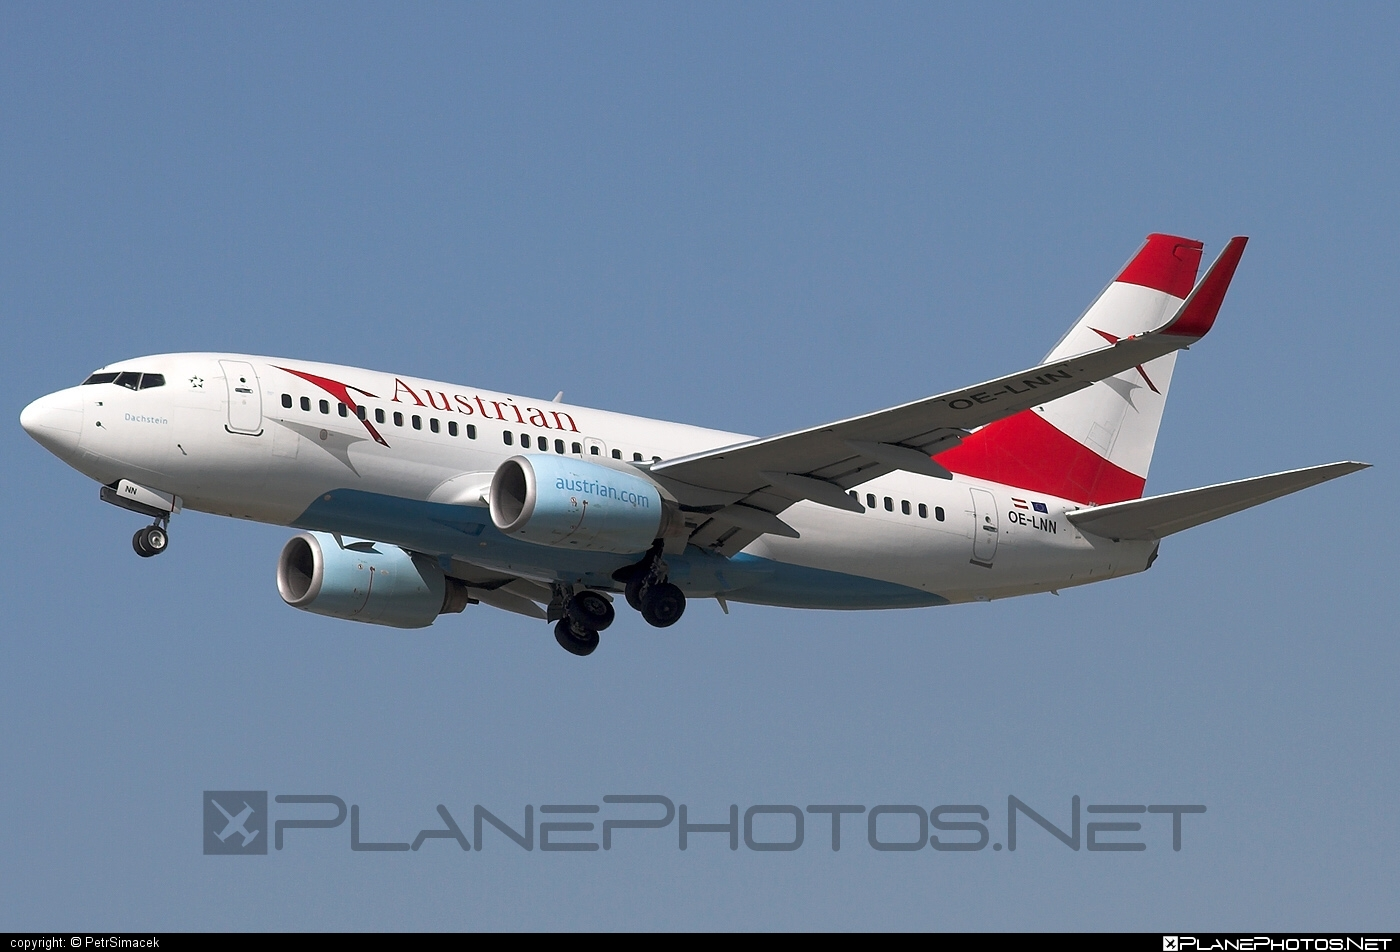 Boeing 737-700 - OE-LNN operated by Austrian Airlines #b737 #b737nextgen #b737ng #boeing #boeing737